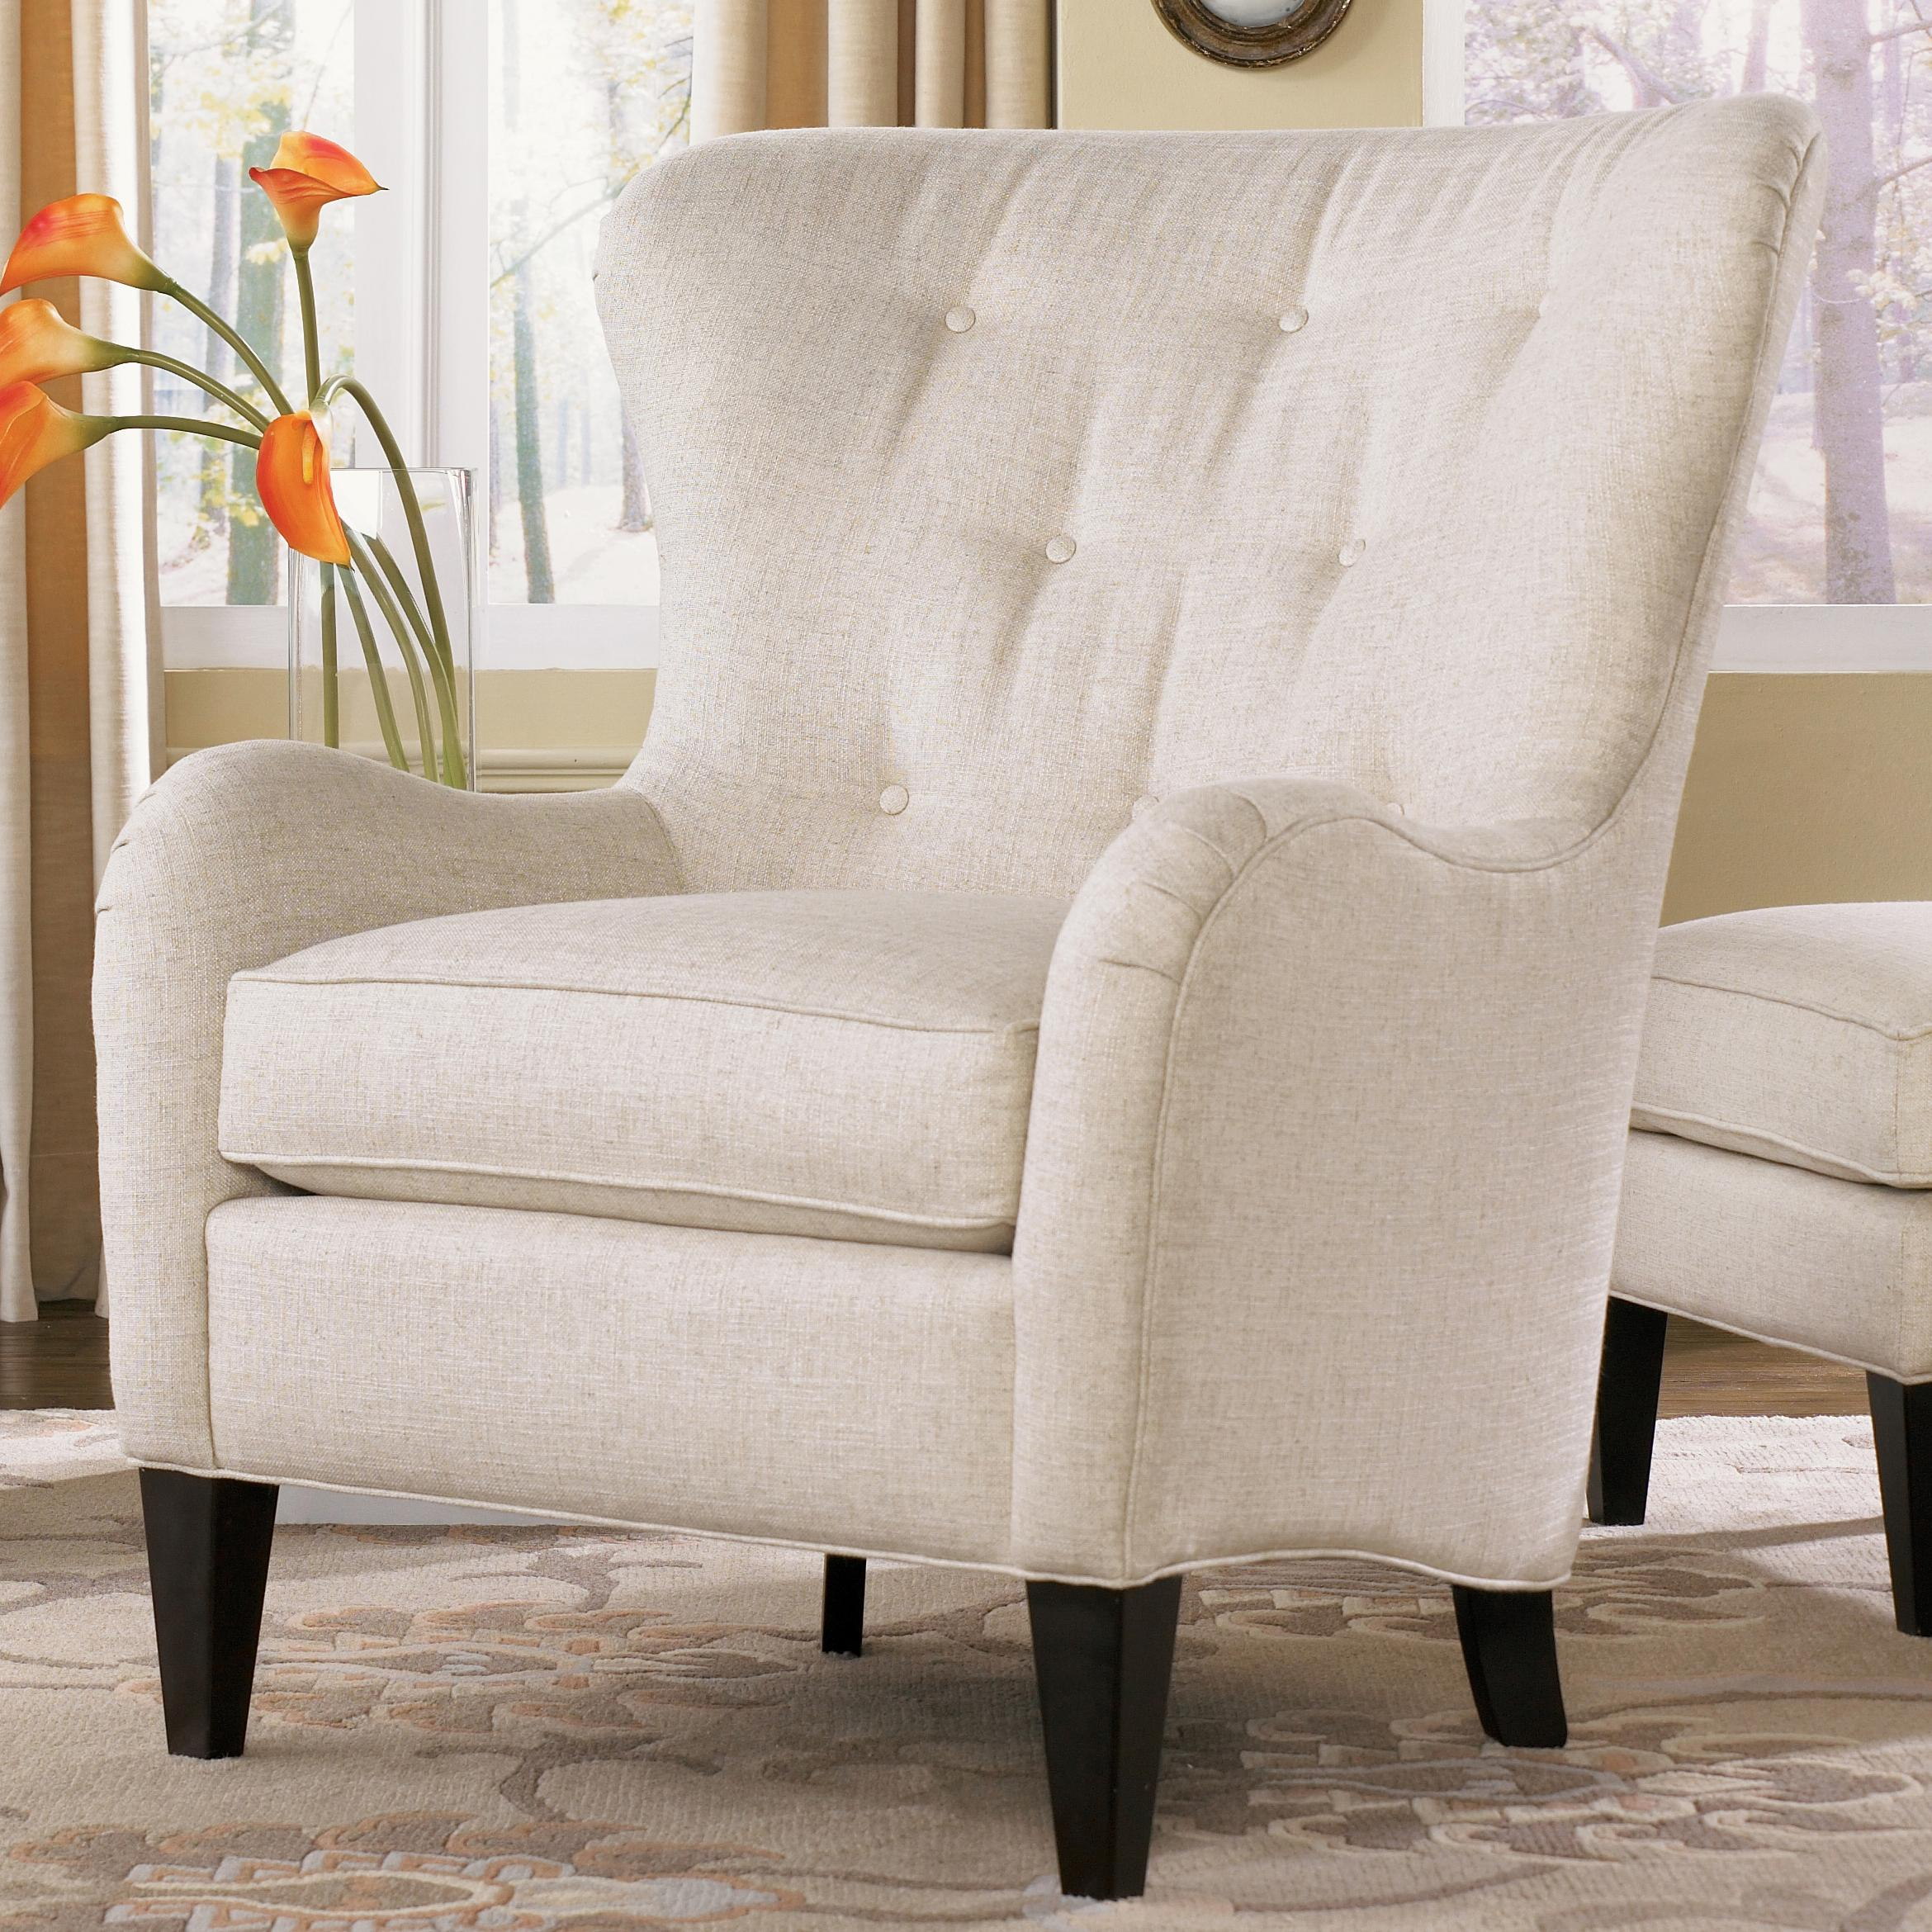 Smith Brothers 502 Style Group Wing Back Chair with Tufting and